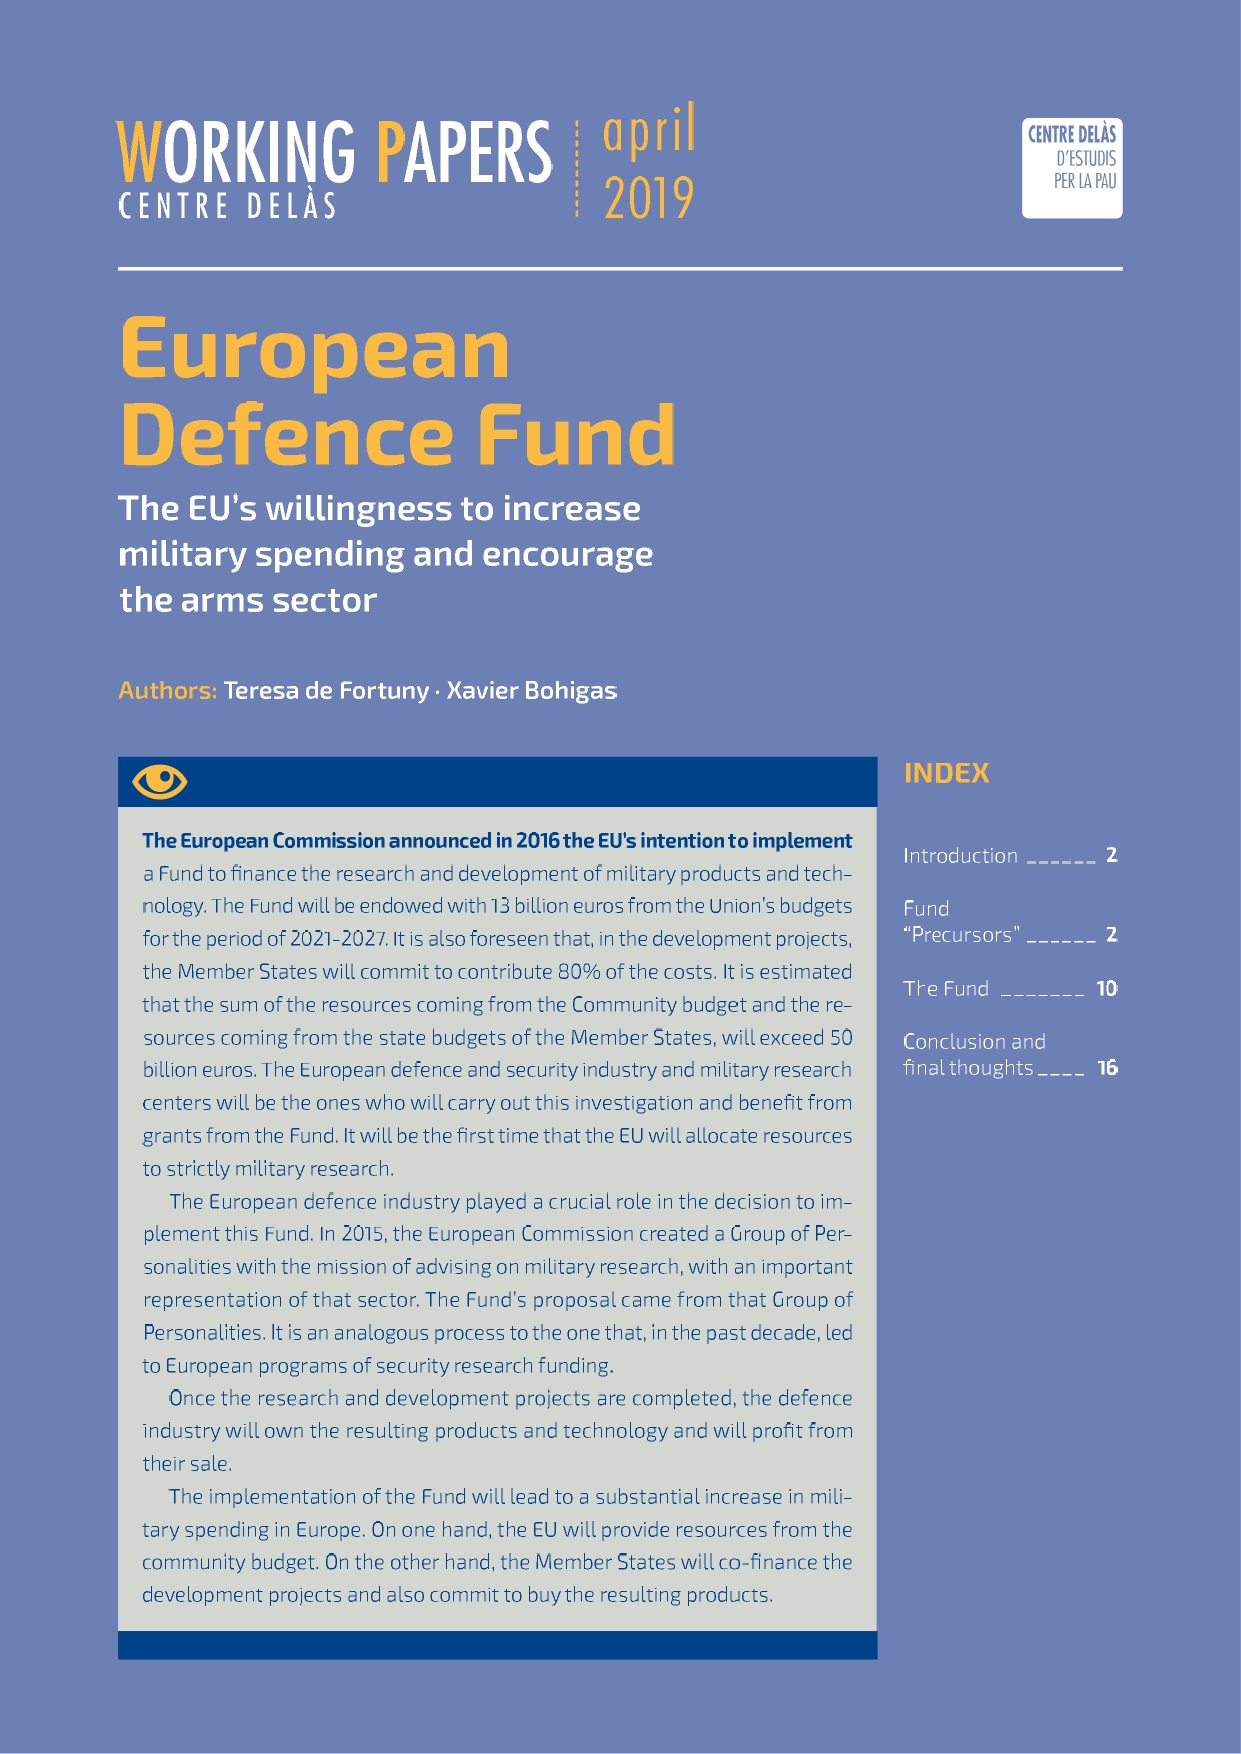 Working Paper: European Defence Fund